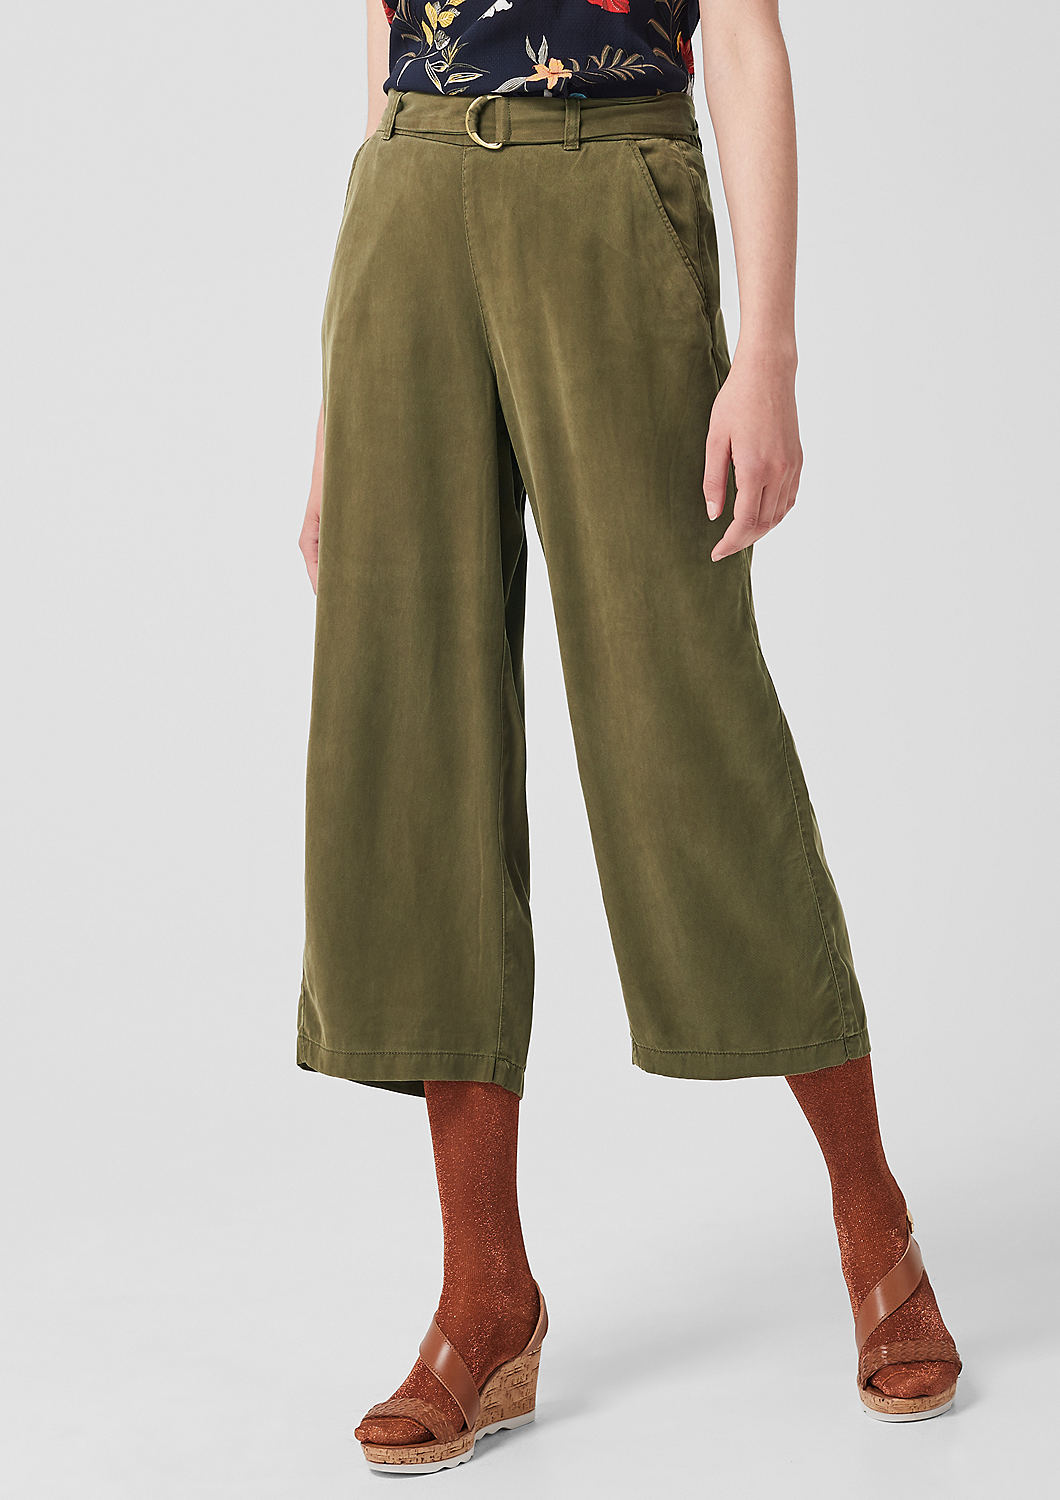 s.Oliver - Culotte: Twillhose aus Lyocell - 5